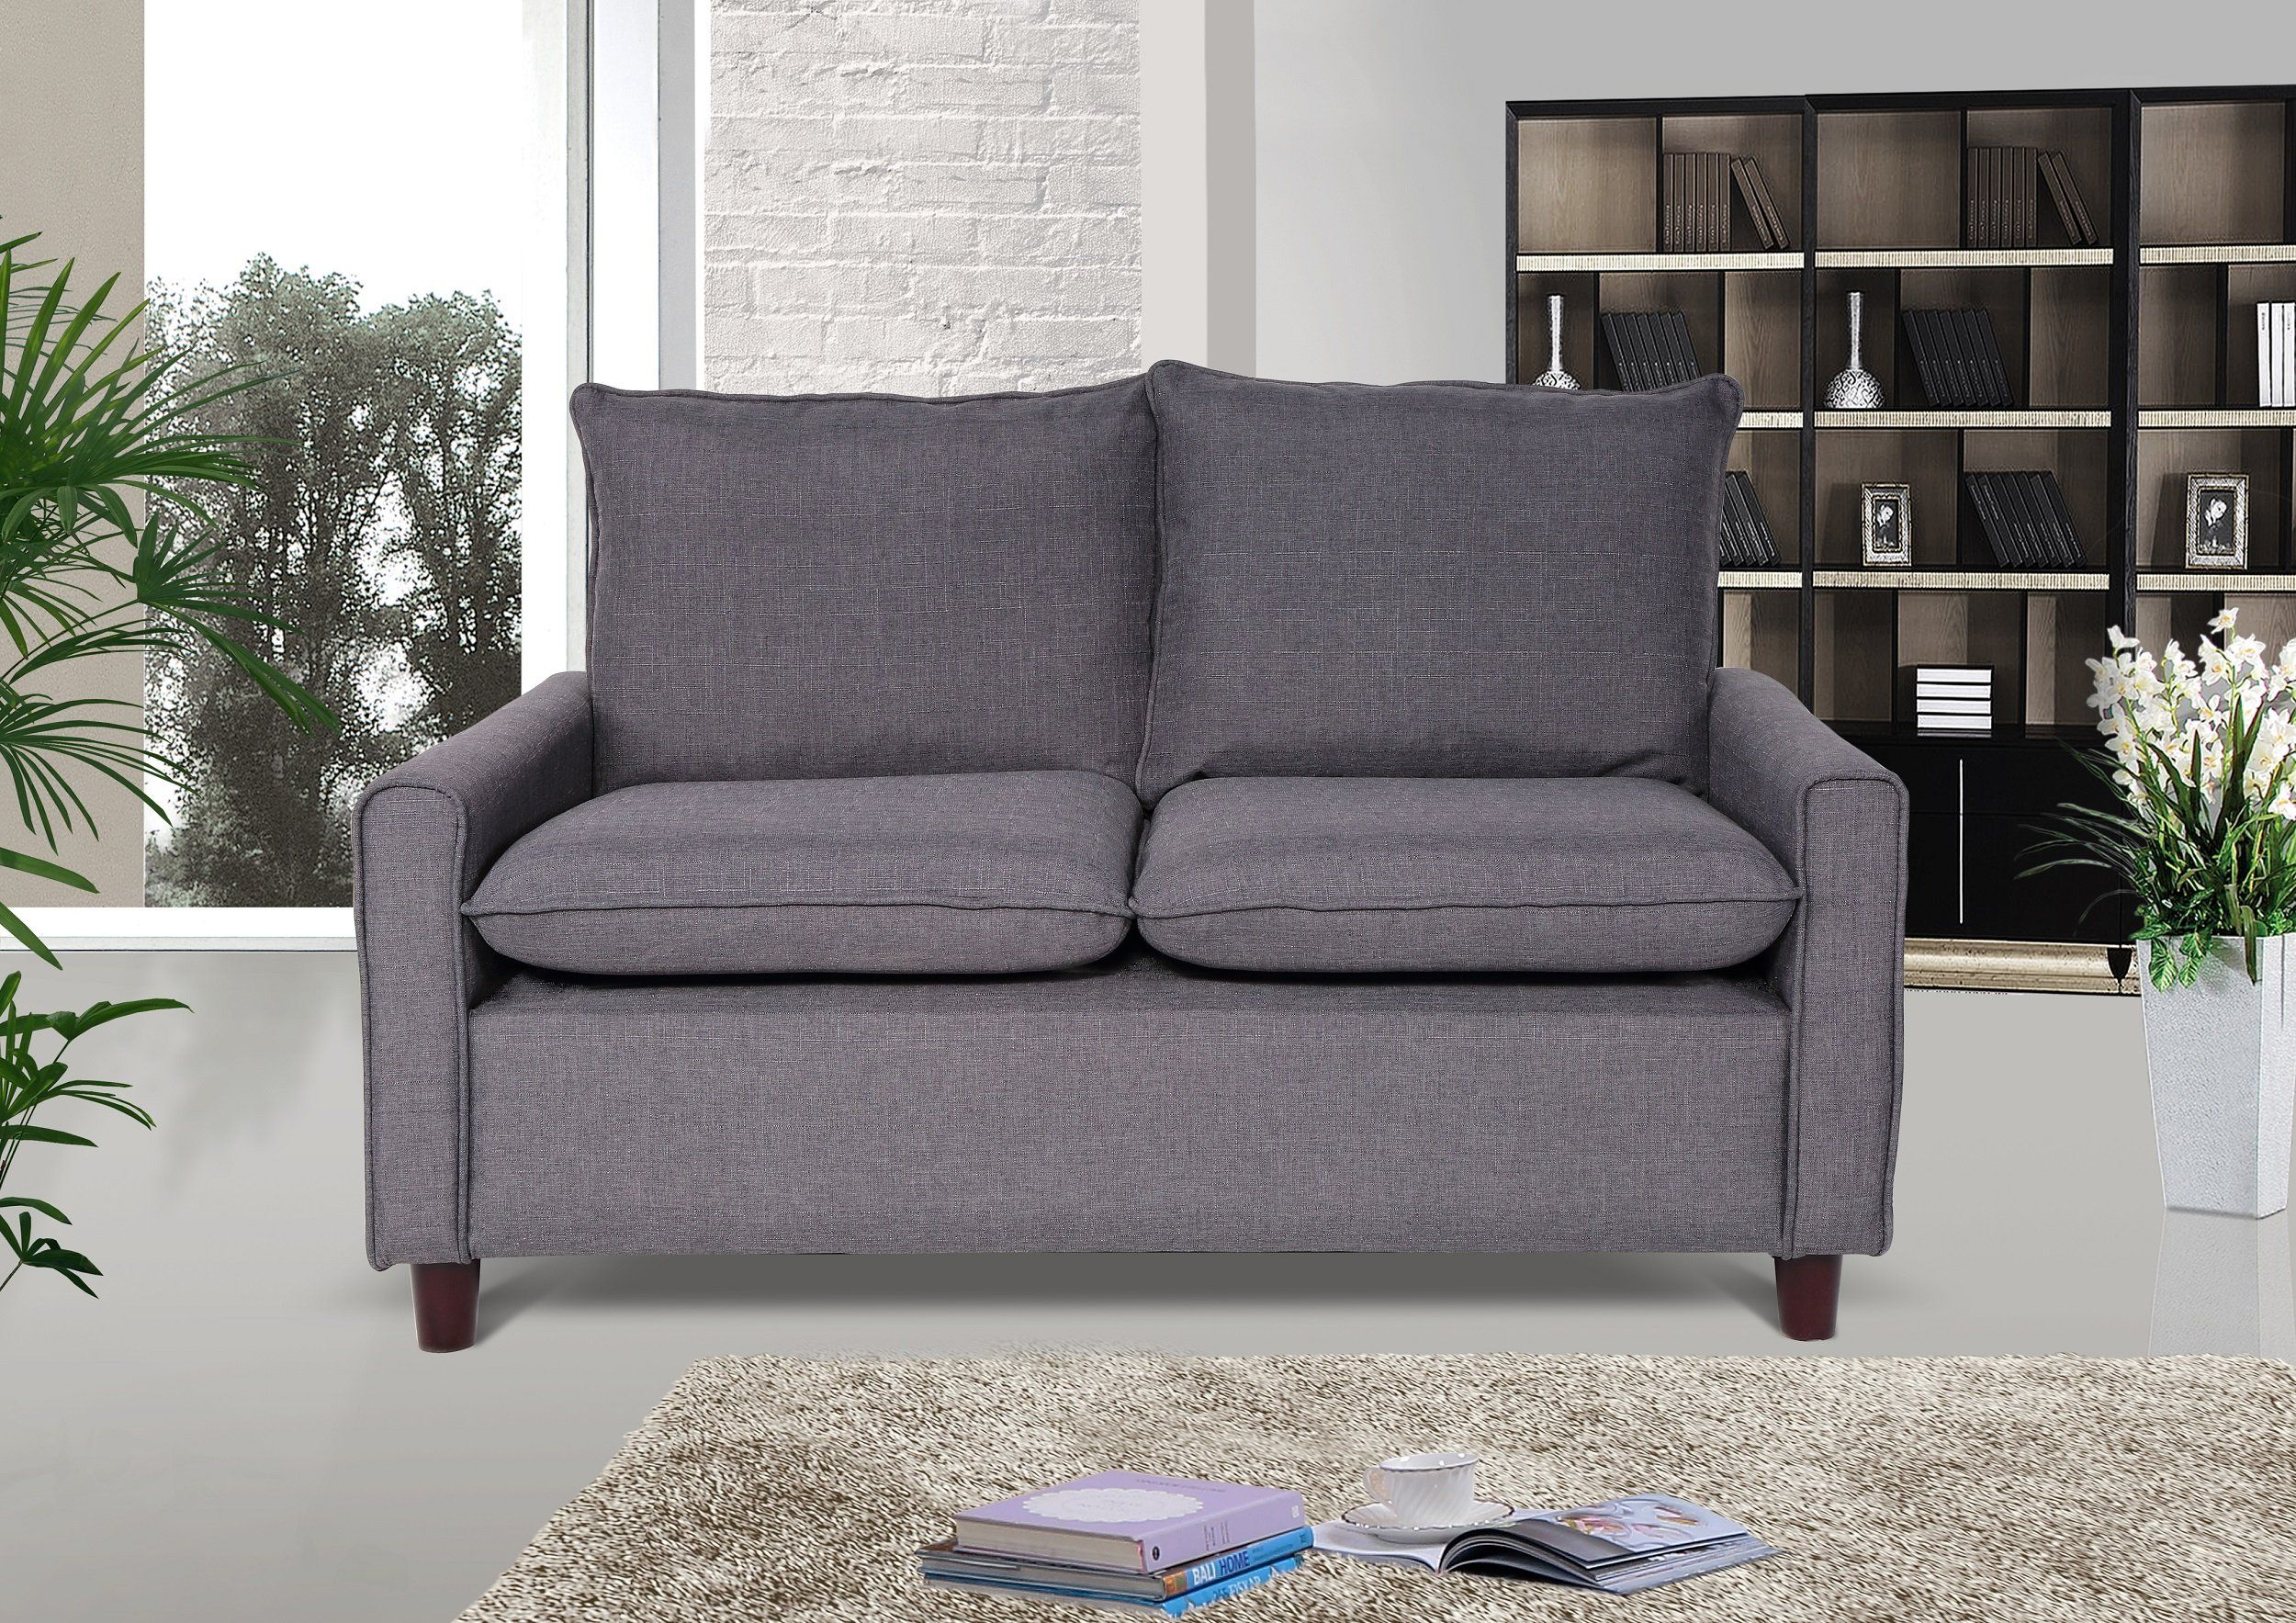 Us Pride Furniture Blaire Fabric Modern Loveseat Dark Grey